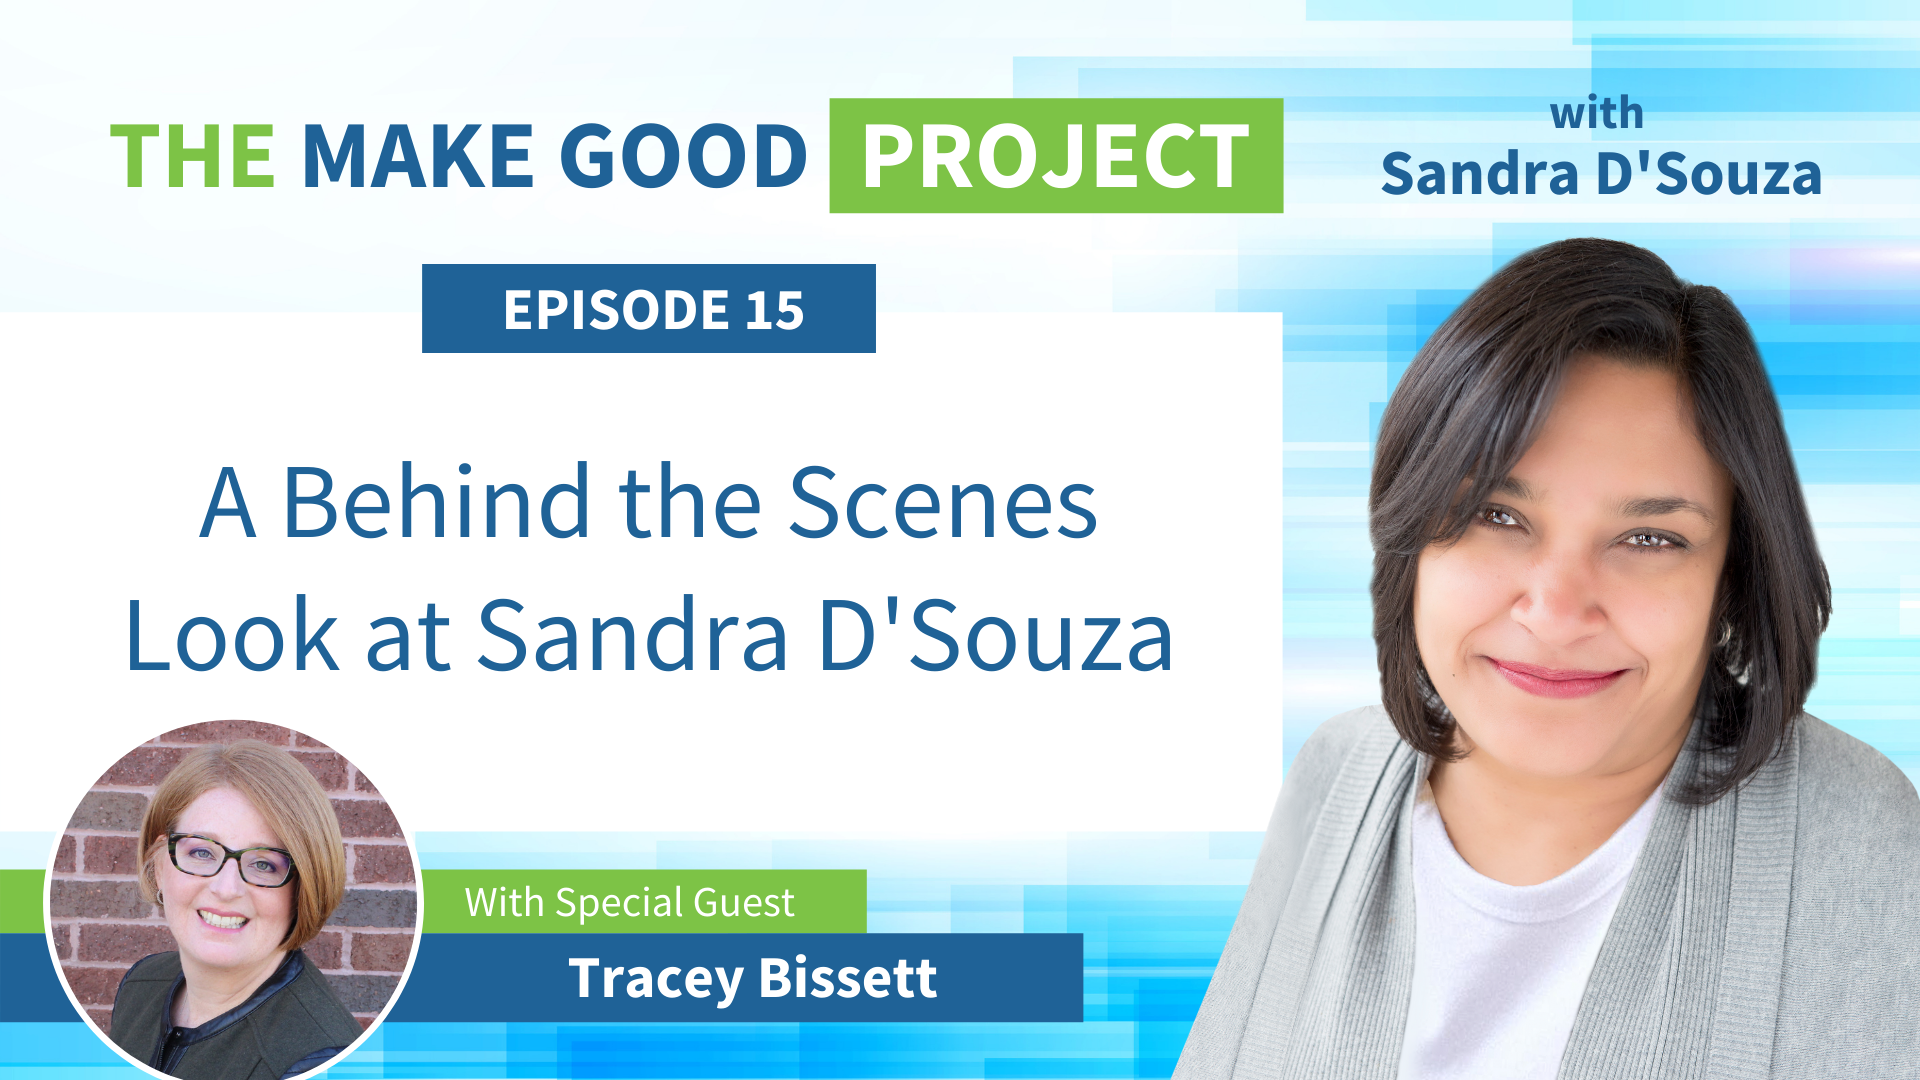 EP #15: A Behind the Scenes Look at Sandra D'Souza with Tracey Bissett